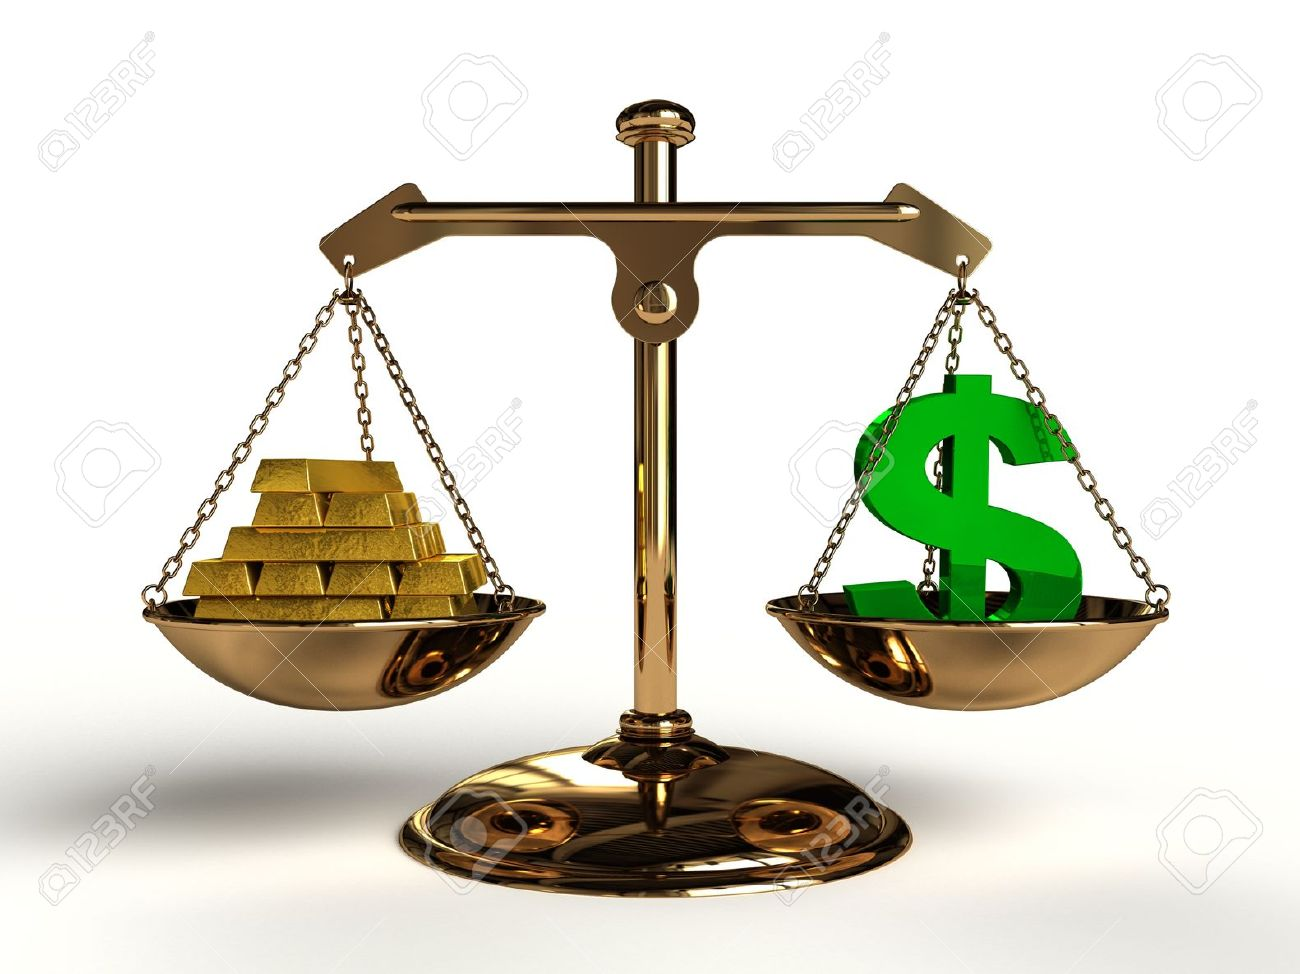 The Value Of Money On A Golden Balance Are Compared In A Green